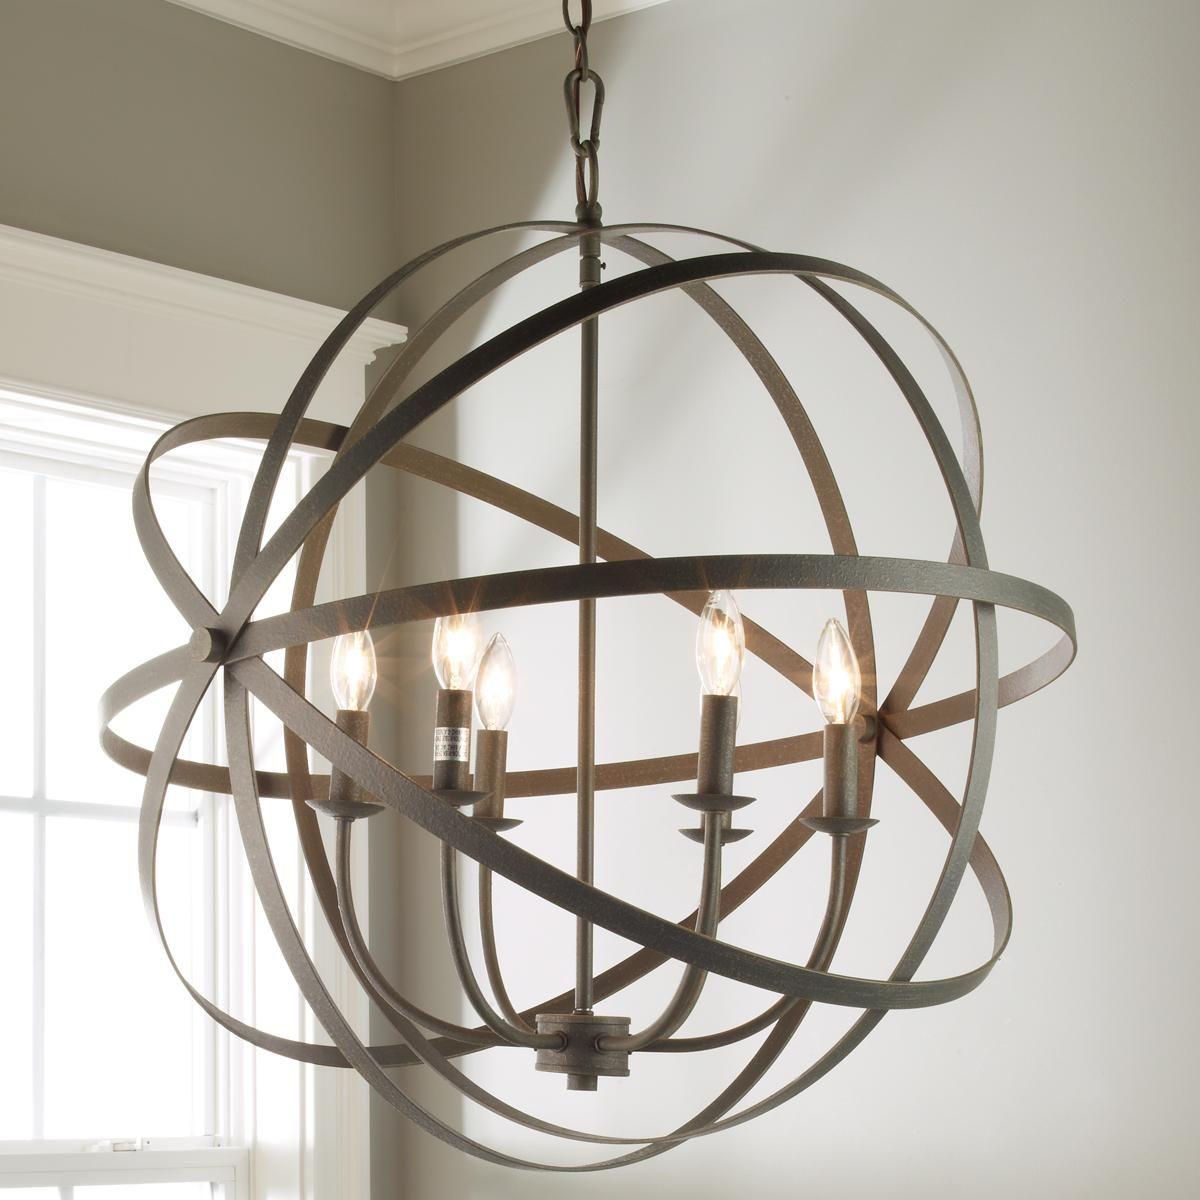 Zinc Orbit Globe Chandelier - 6 Light | Bedding, Lighting throughout Joon 6-Light Globe Chandeliers (Image 30 of 30)